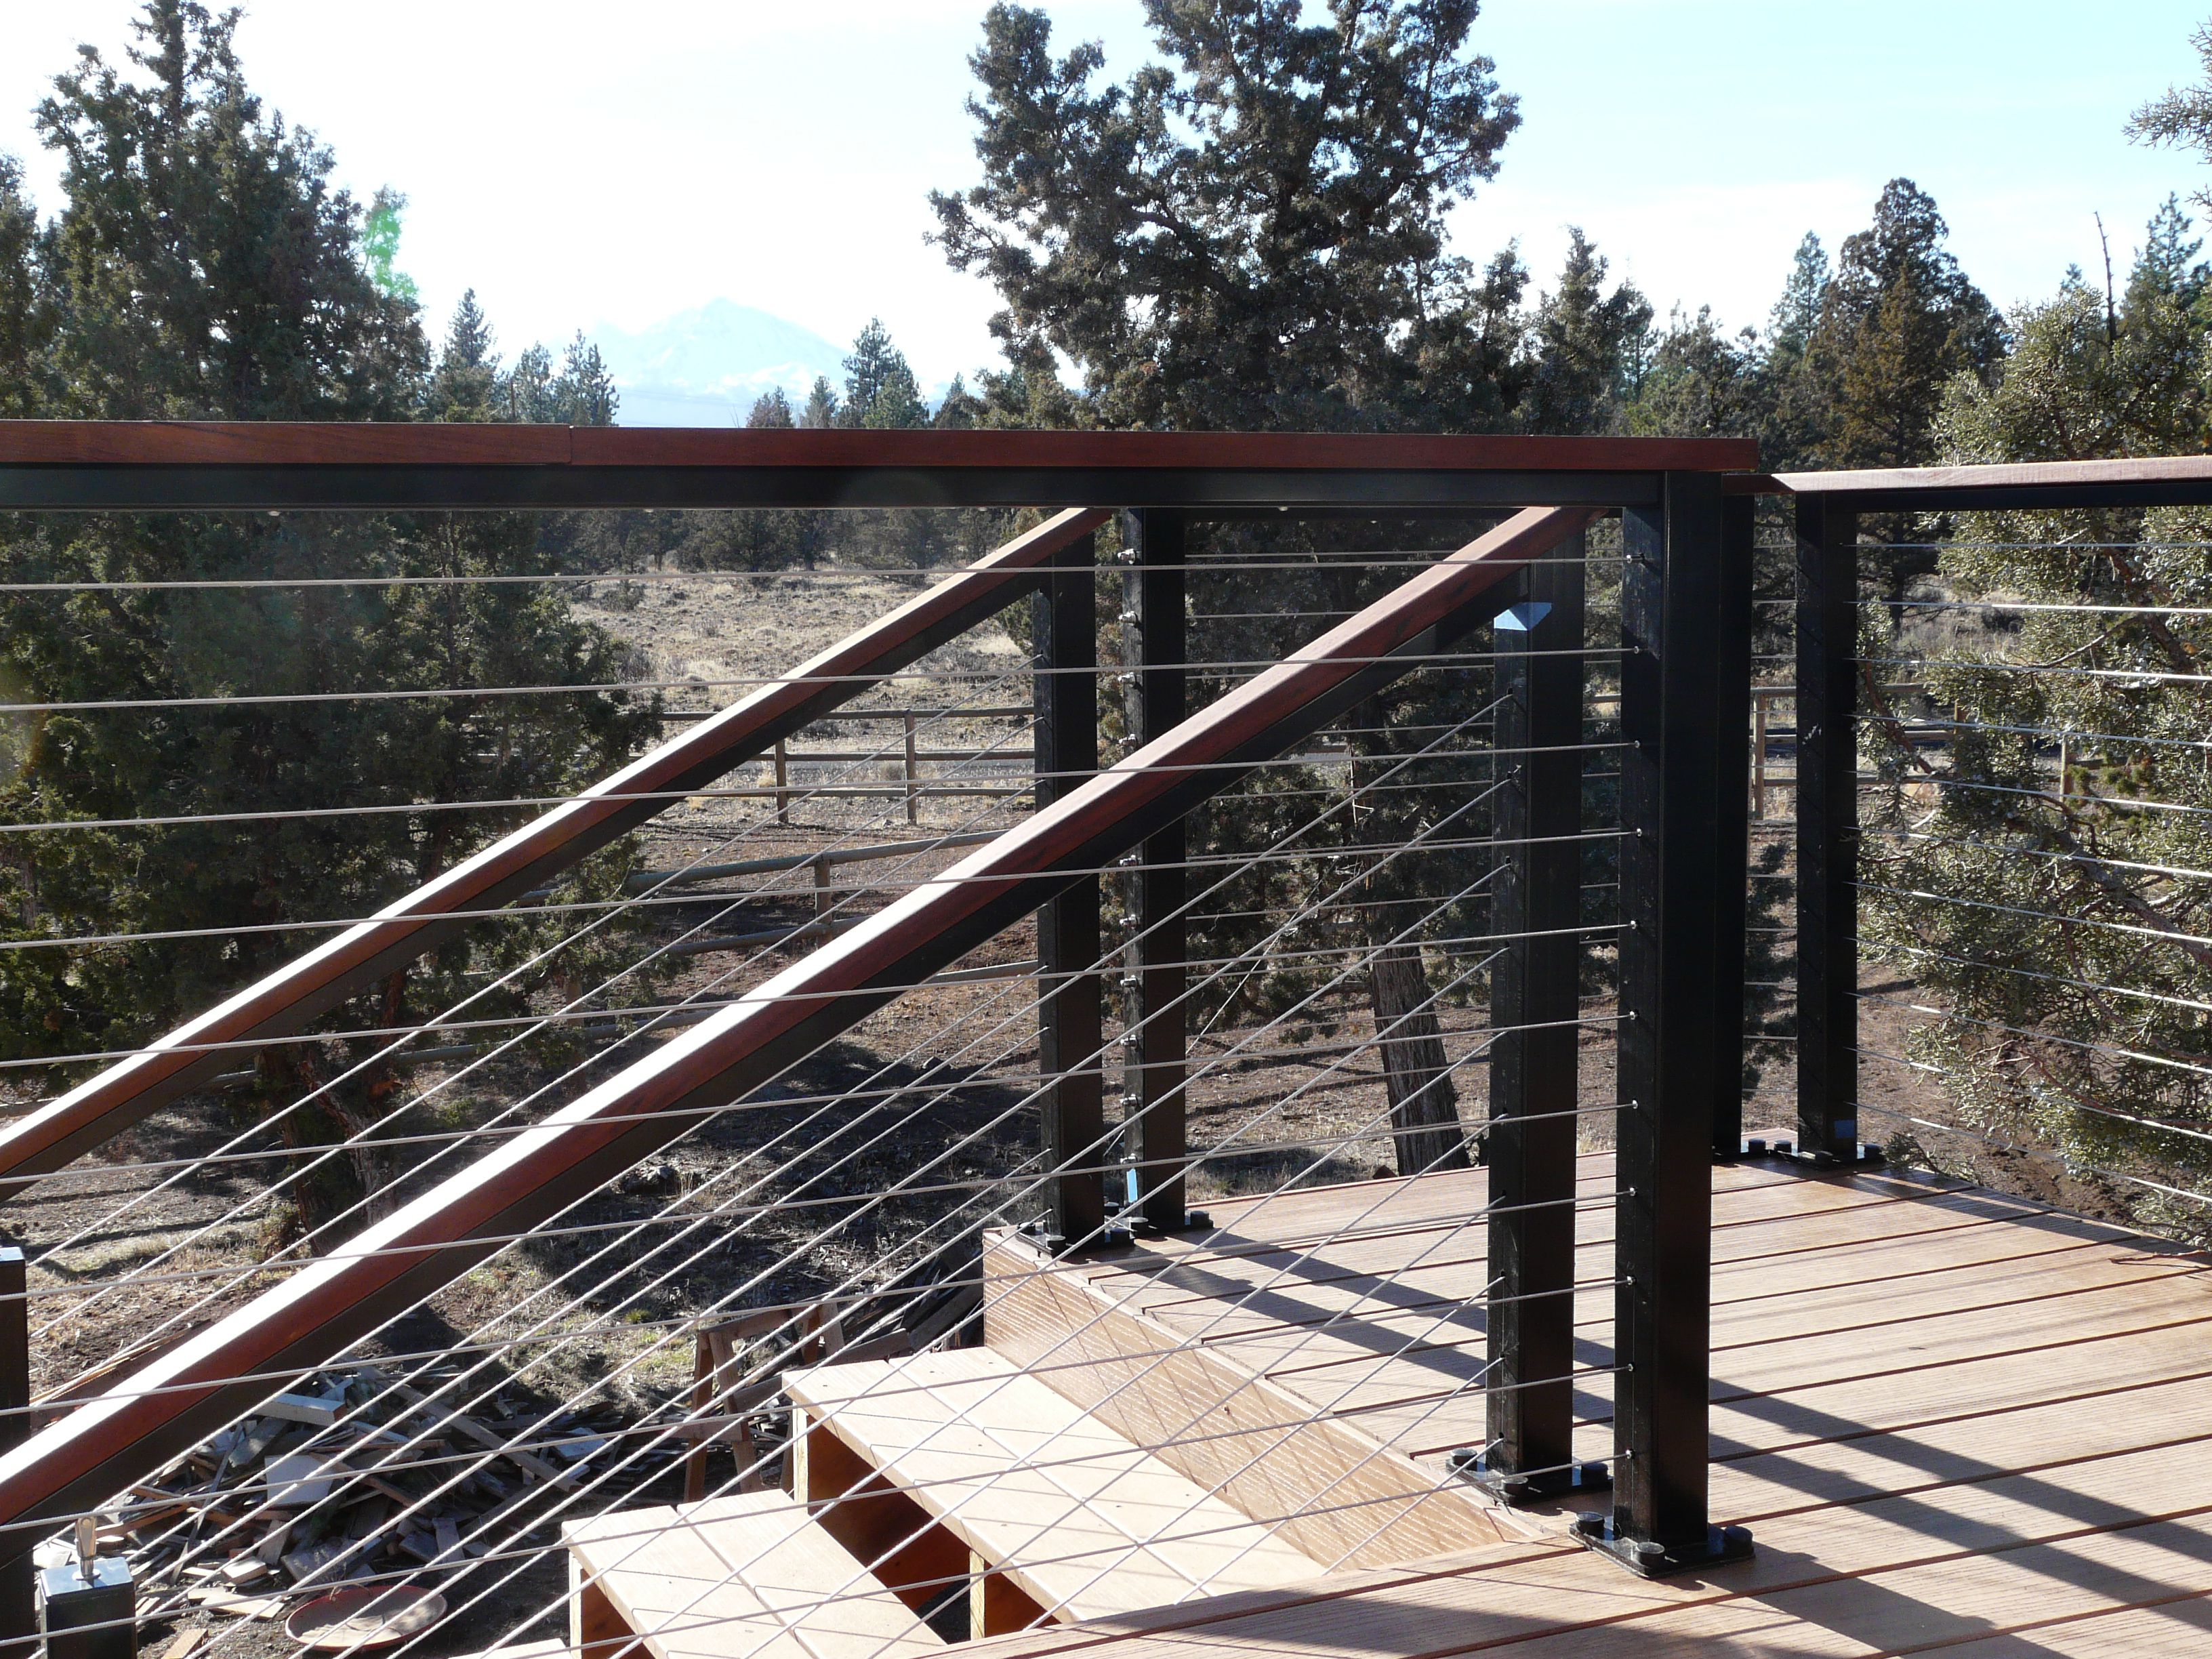 Black Aluminum Posts with Wood Top rail